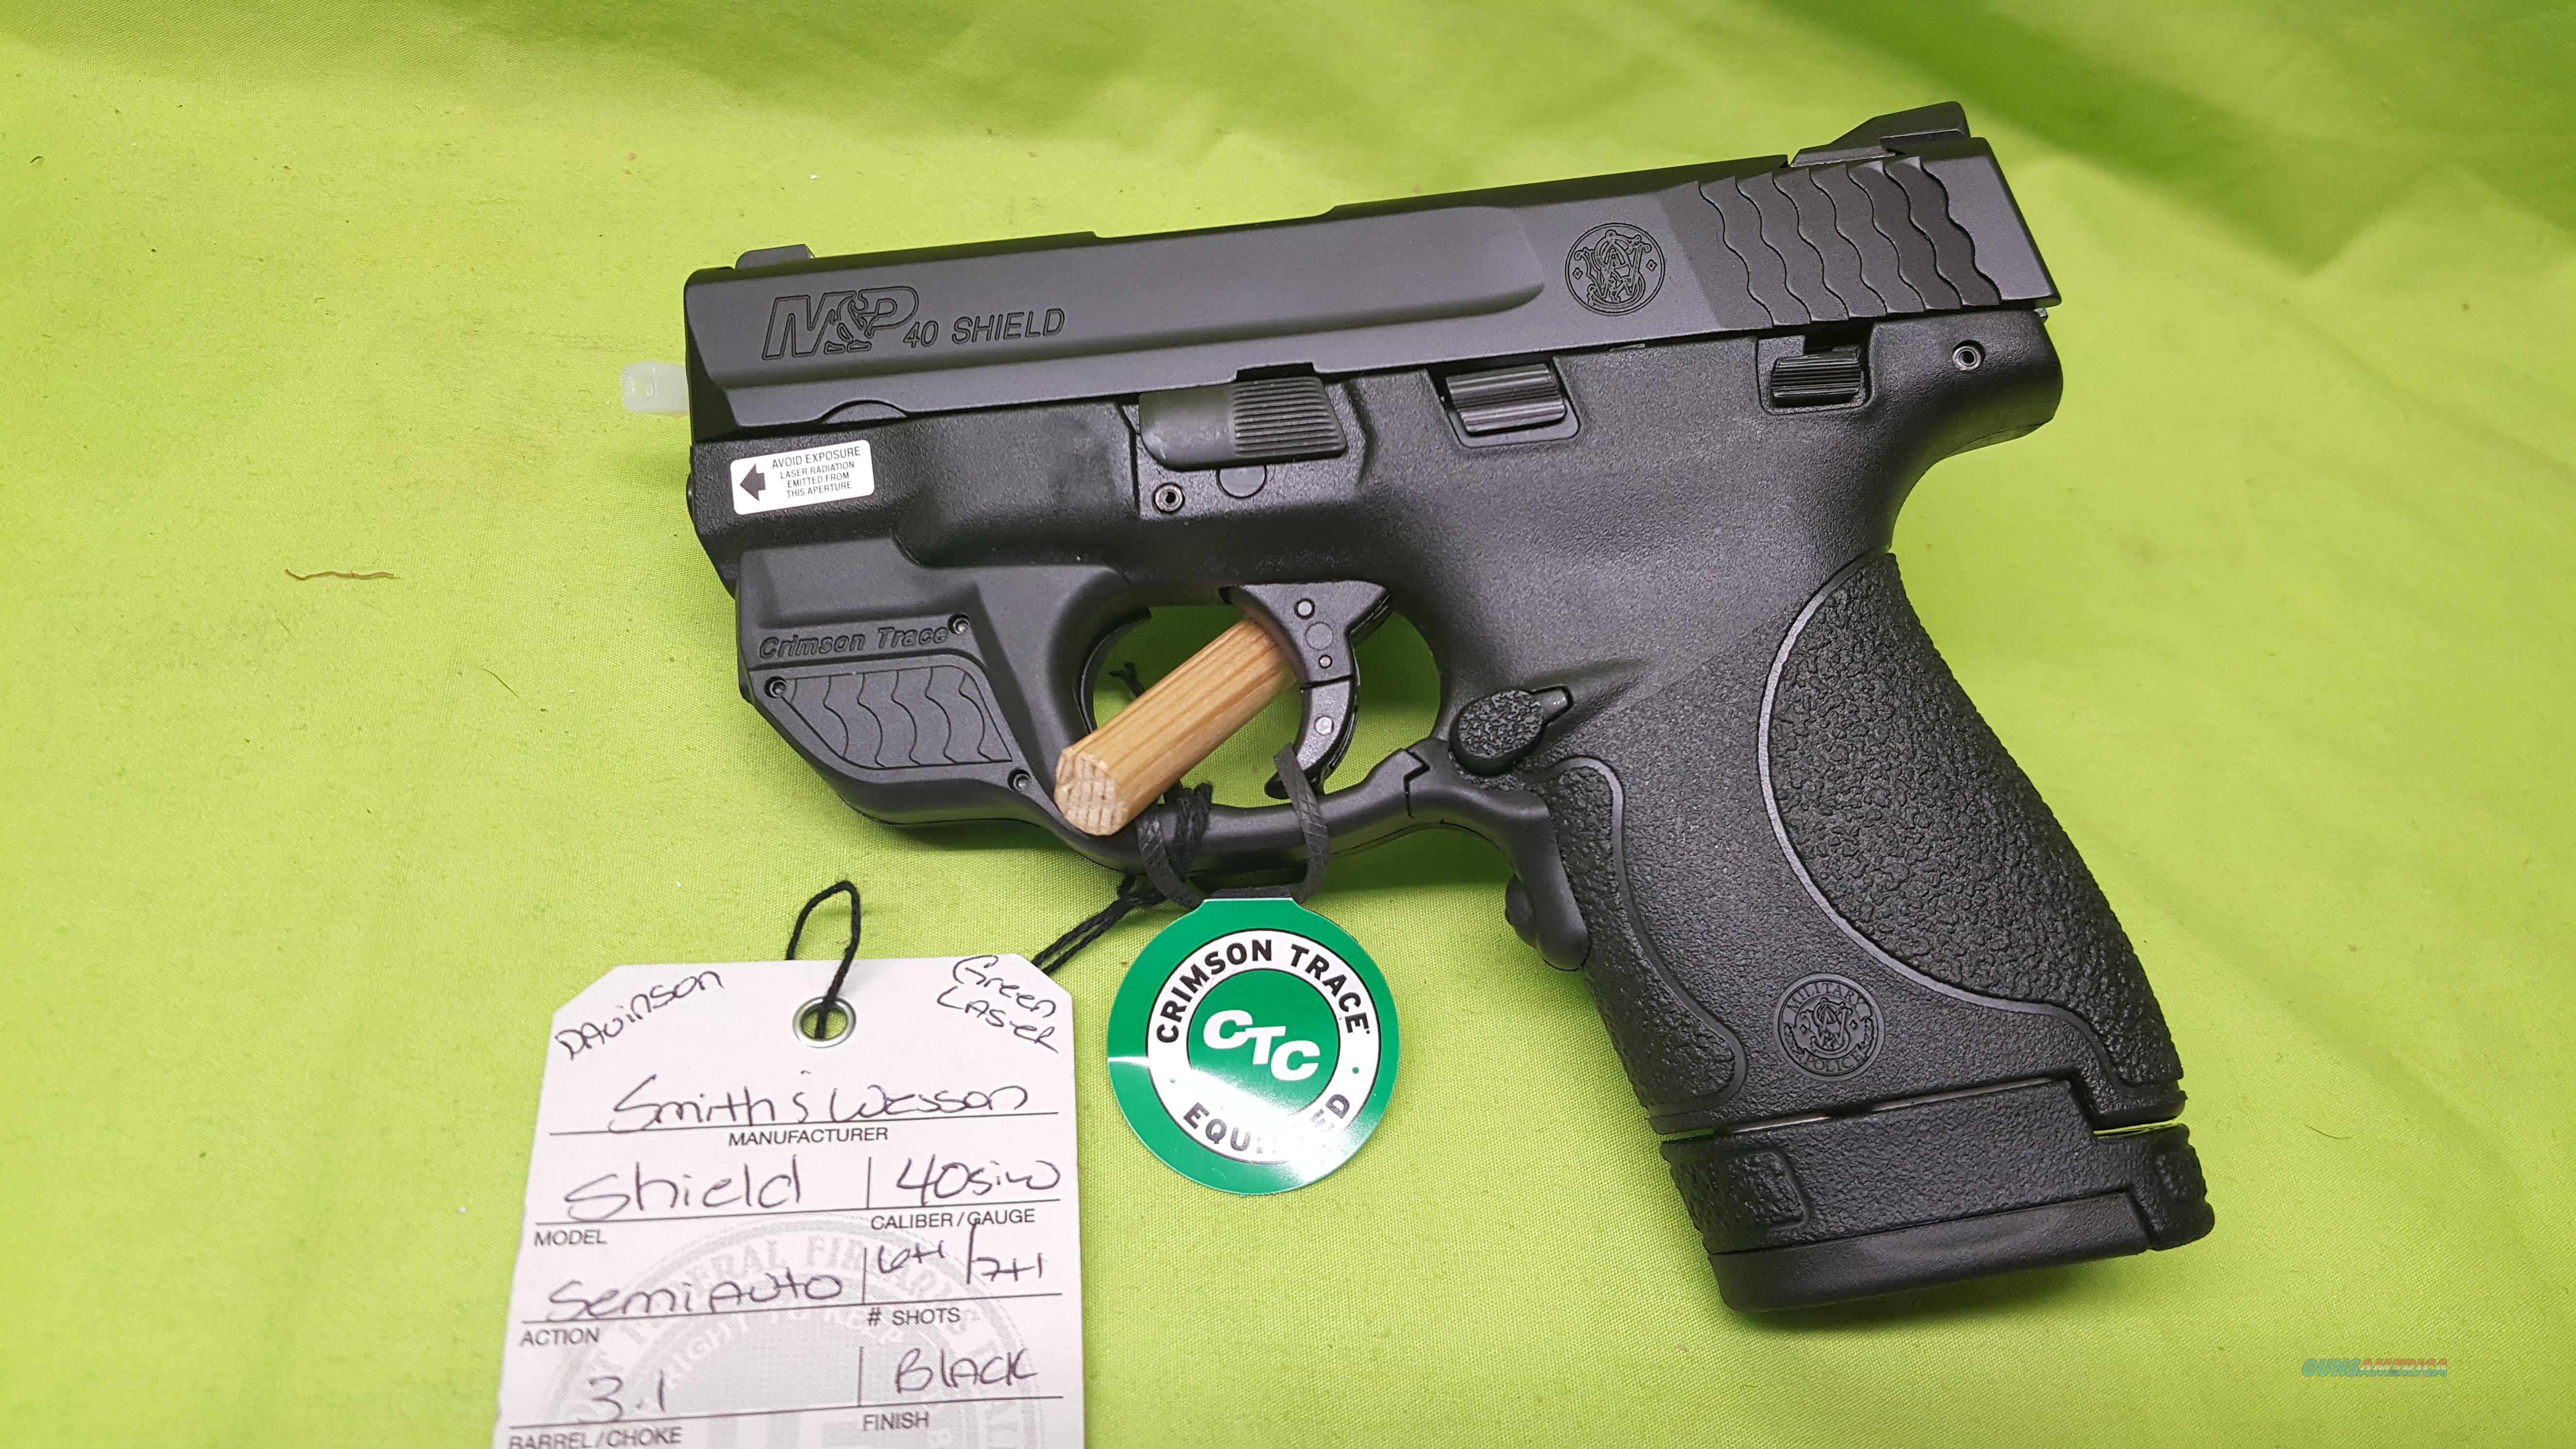 SMITH & WESSON M&P 40 SHIELD 40S&W GREEN LASER  Guns > Pistols > Smith & Wesson Pistols - Autos > Shield